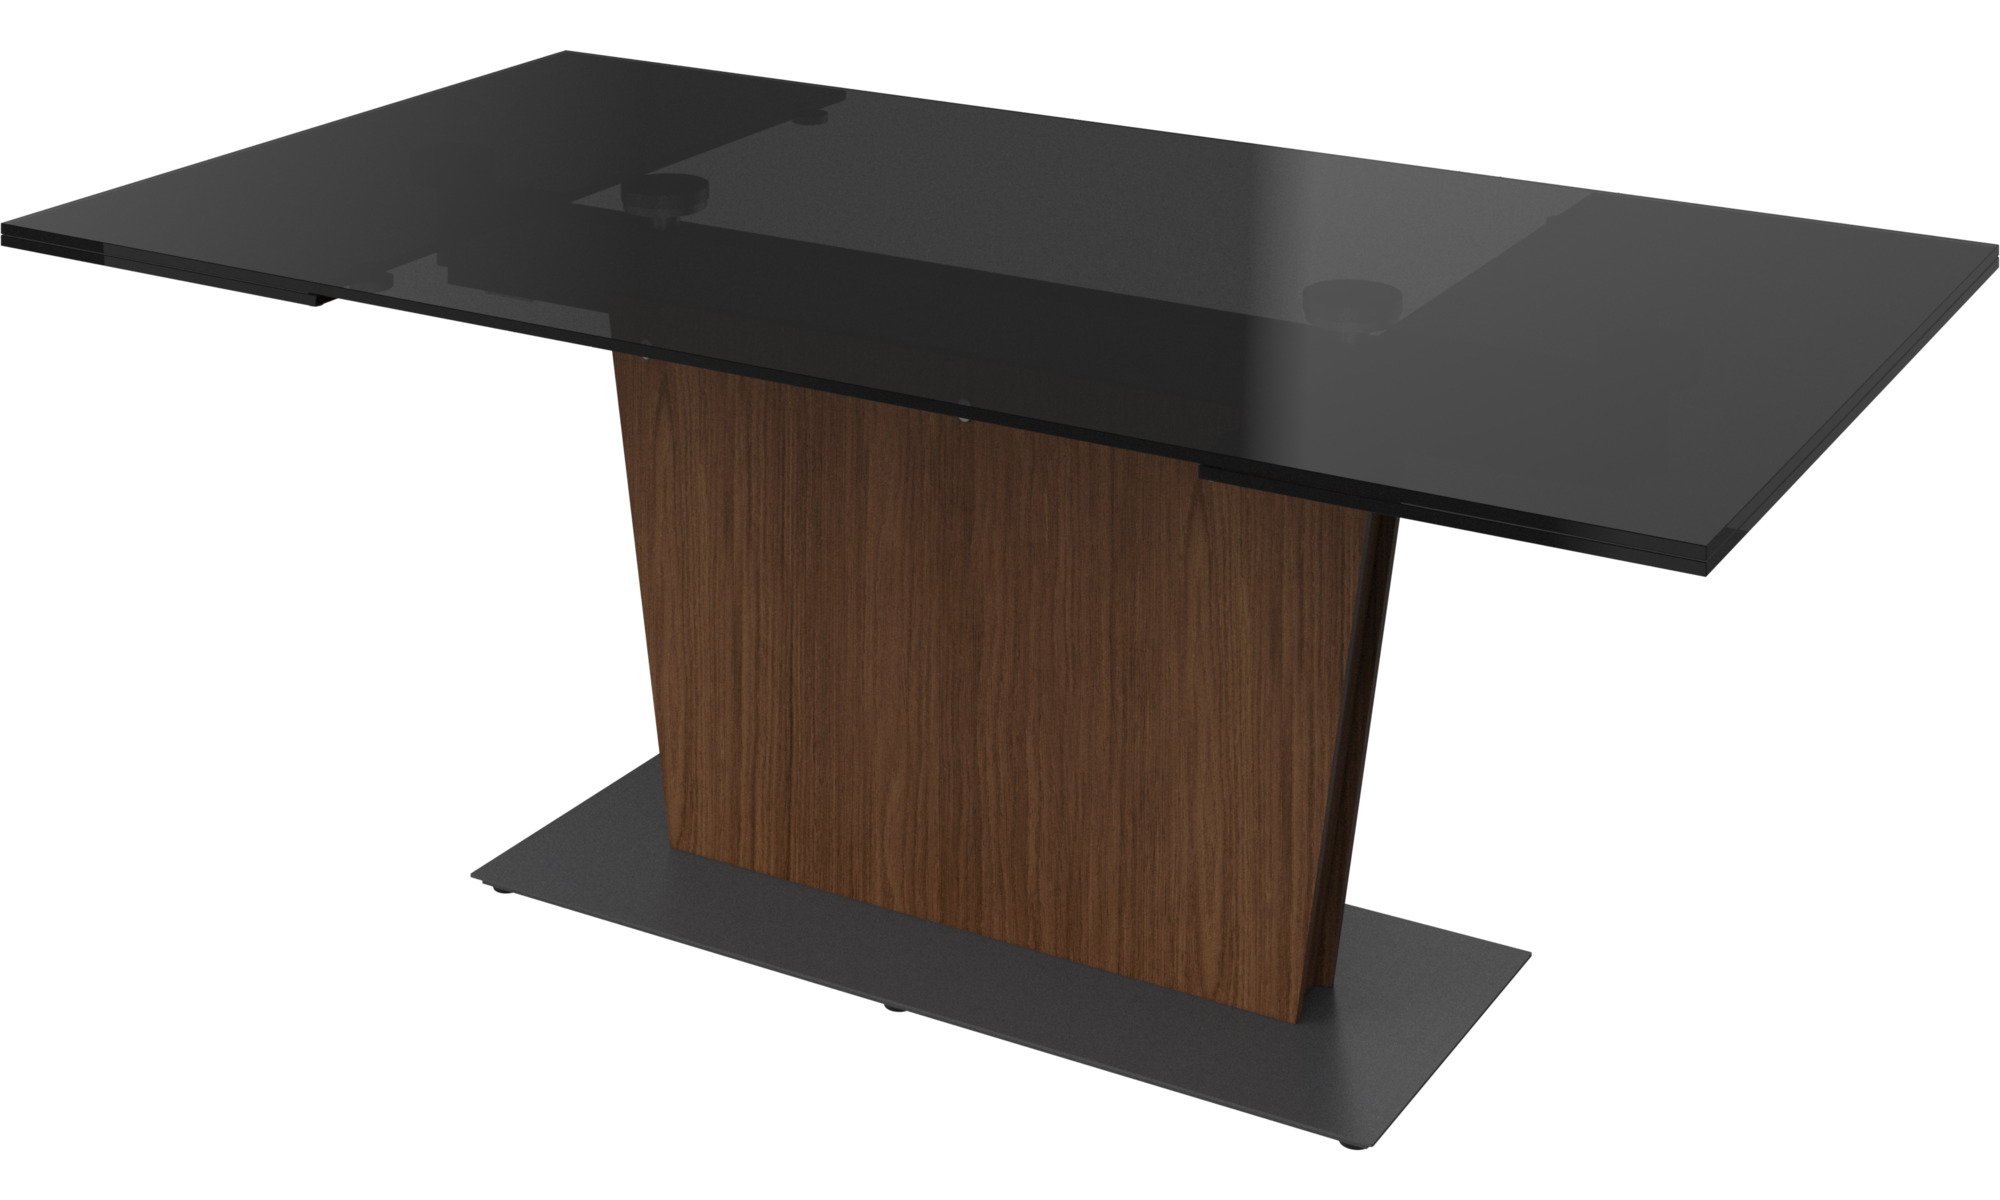 Dining Tables Monza Table With Supplementary Tabletops BoConcept - Conference room table tops